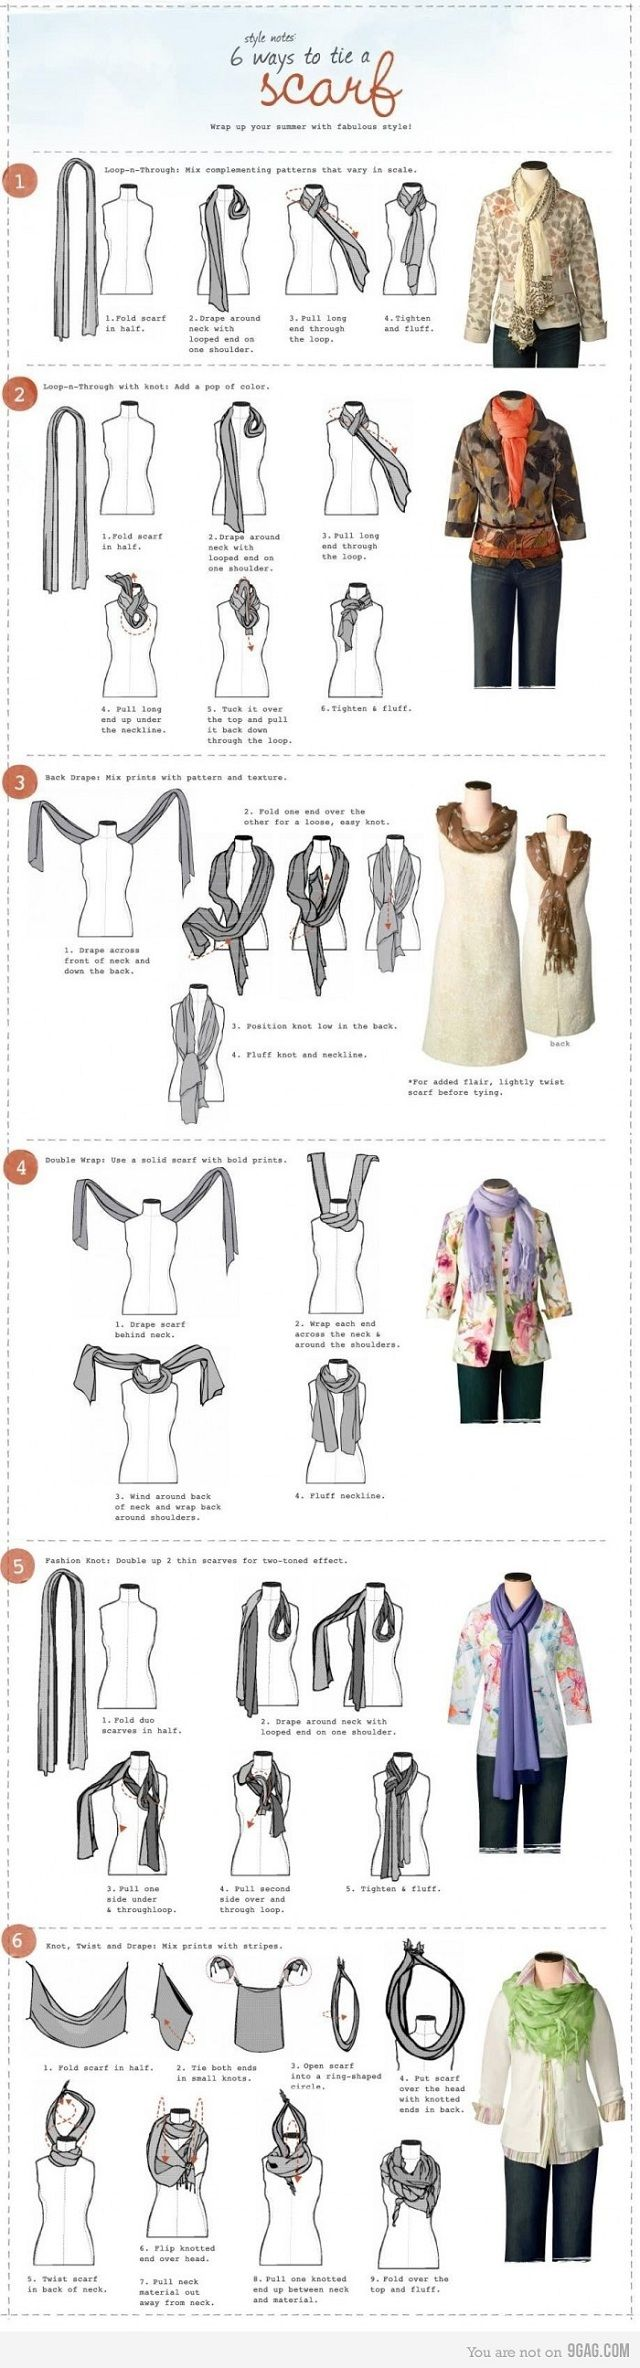 6 ways to tie a scarf: Scarf Tutorial, Scarf Style, How To Wear A Scarf, How To Tie Scarf, How To Wear Scarf, How To Wear Pashmina, How To Style Scarf, Winter Scarf